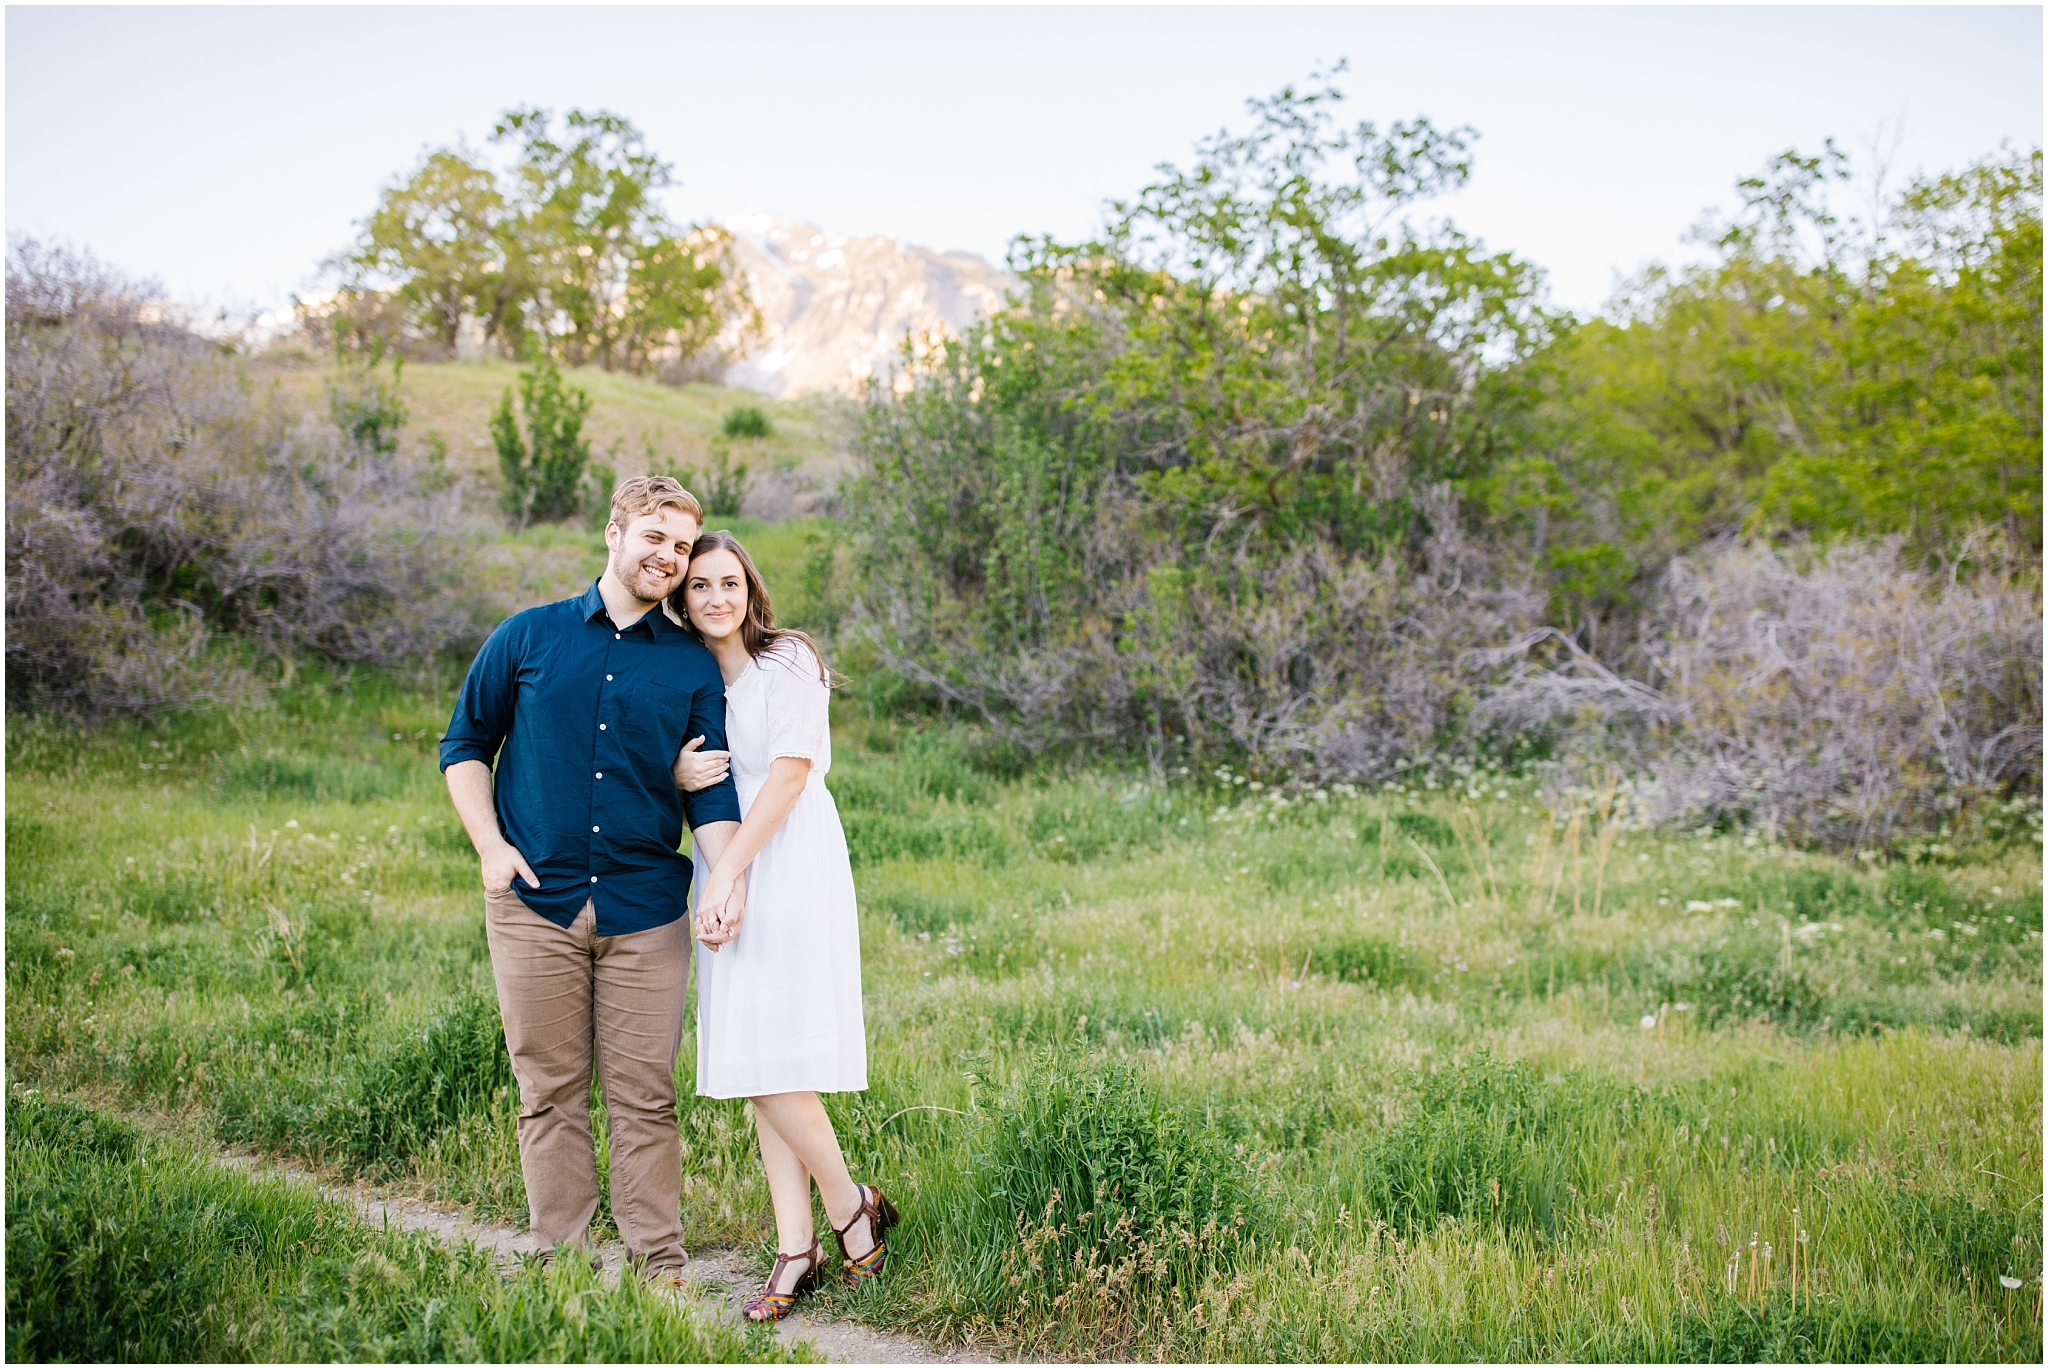 Lizzie-B-Imagery-Utah-Wedding-Photographer-Thanksgiving-Point-Payson-Temple_0151.jpg